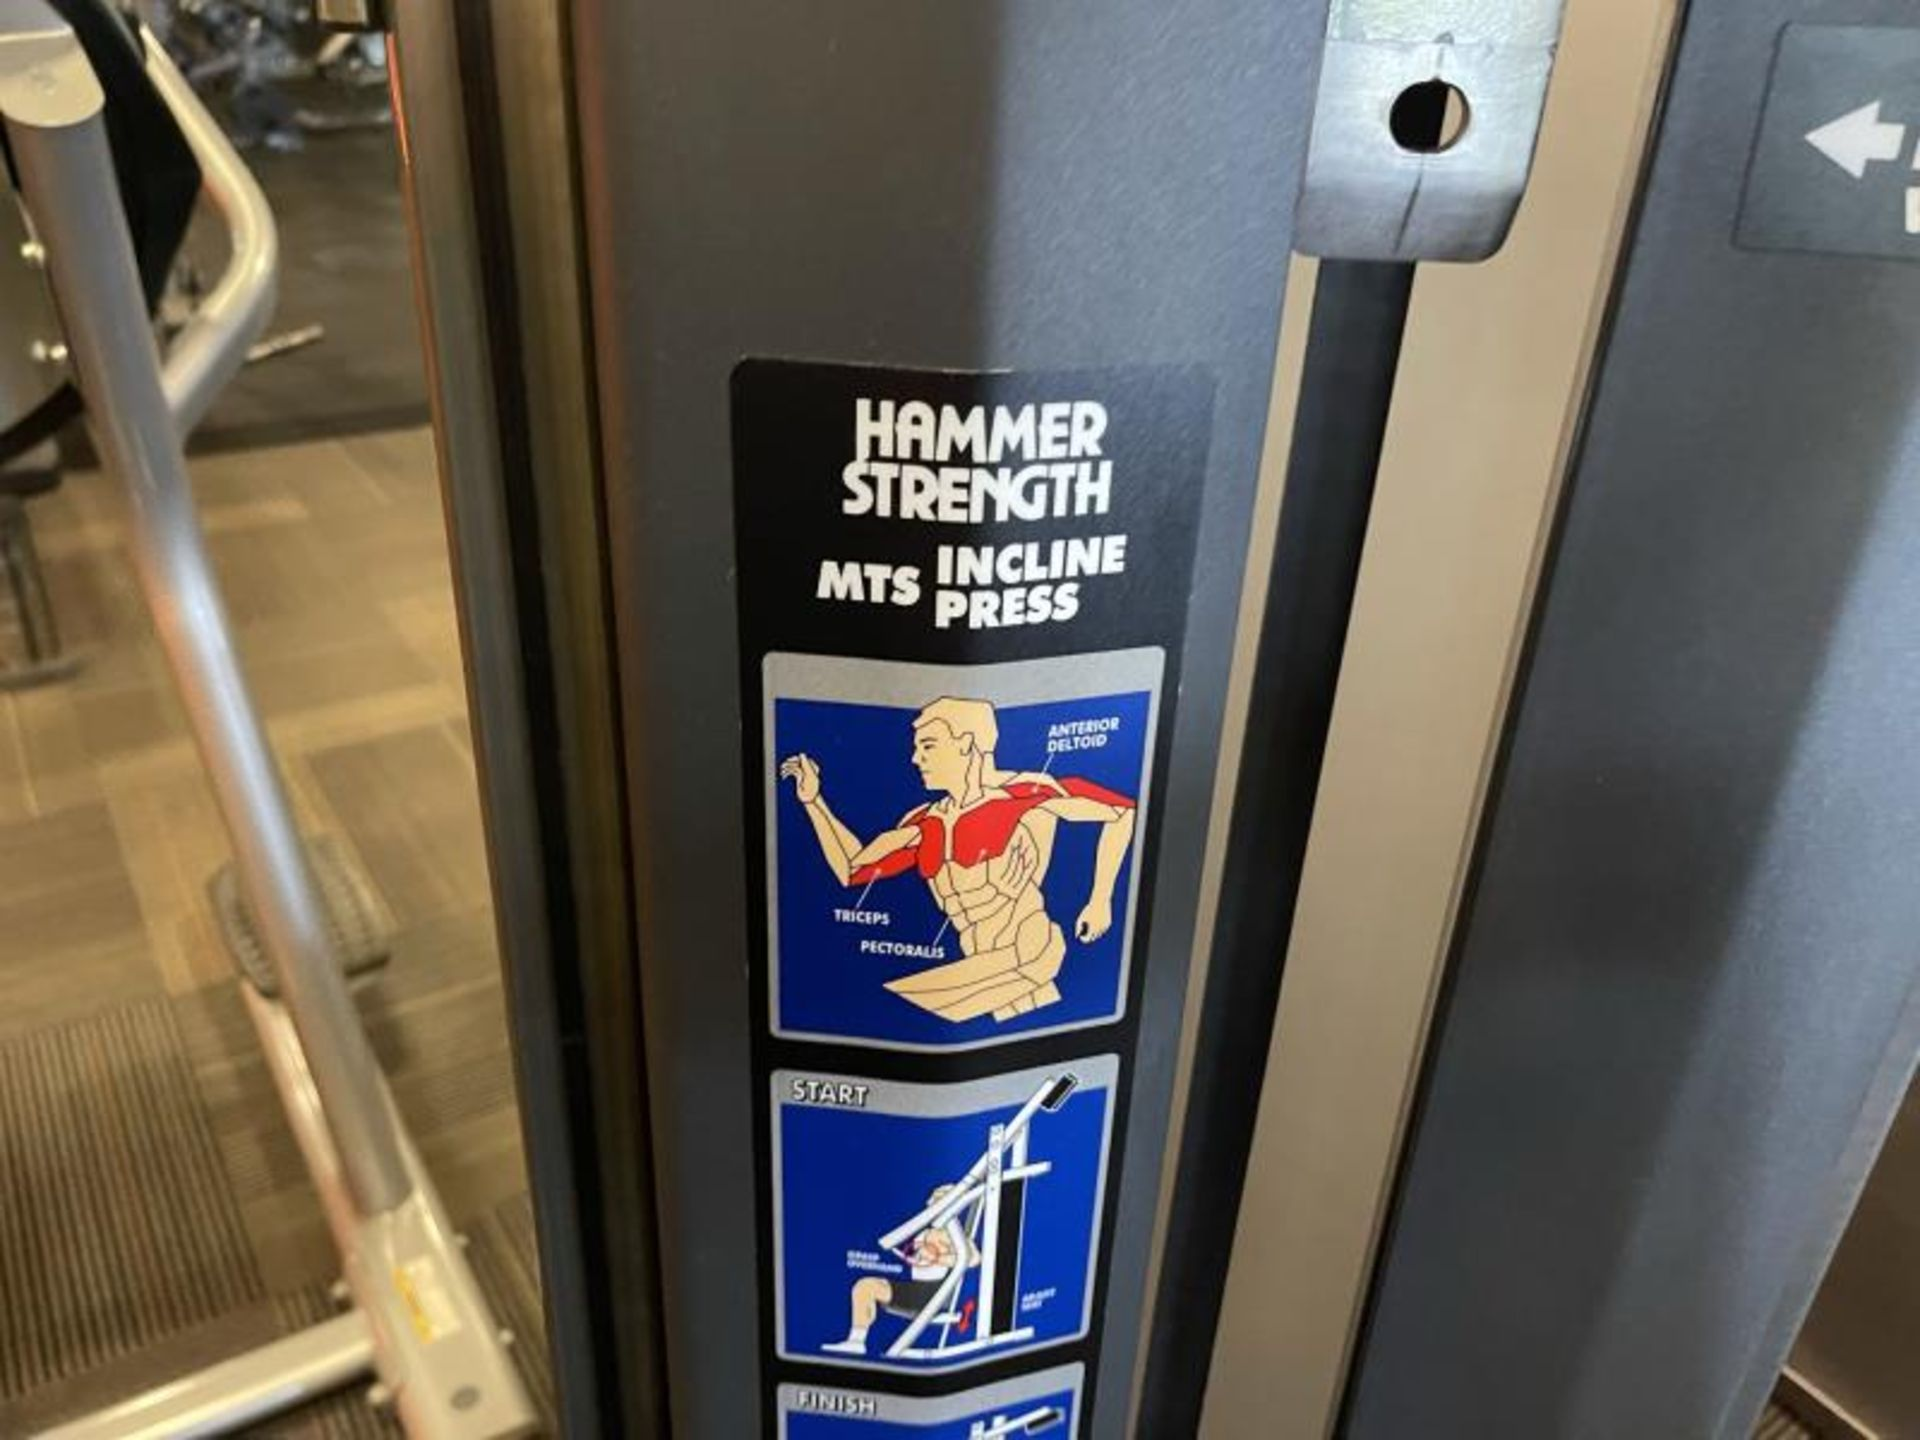 Hammer Strength MIS Incline Press M: MISIP - Image 5 of 5